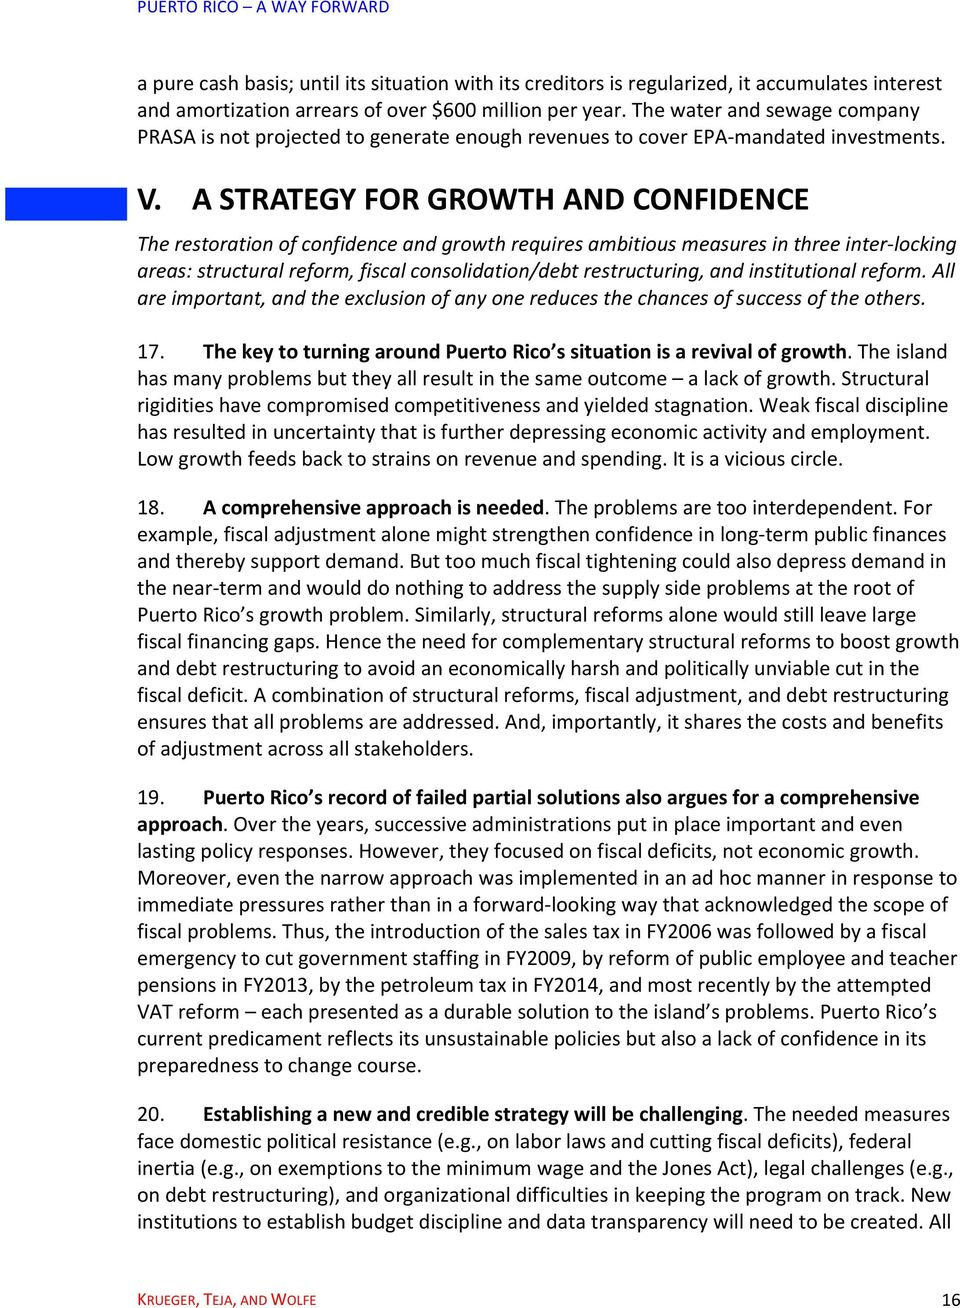 A STRATEGY FOR GROWTH AND CONFIDENCE The restoration of confidence and growth requires ambitious measures in three inter- locking areas: structural reform, fiscal consolidation/debt restructuring,